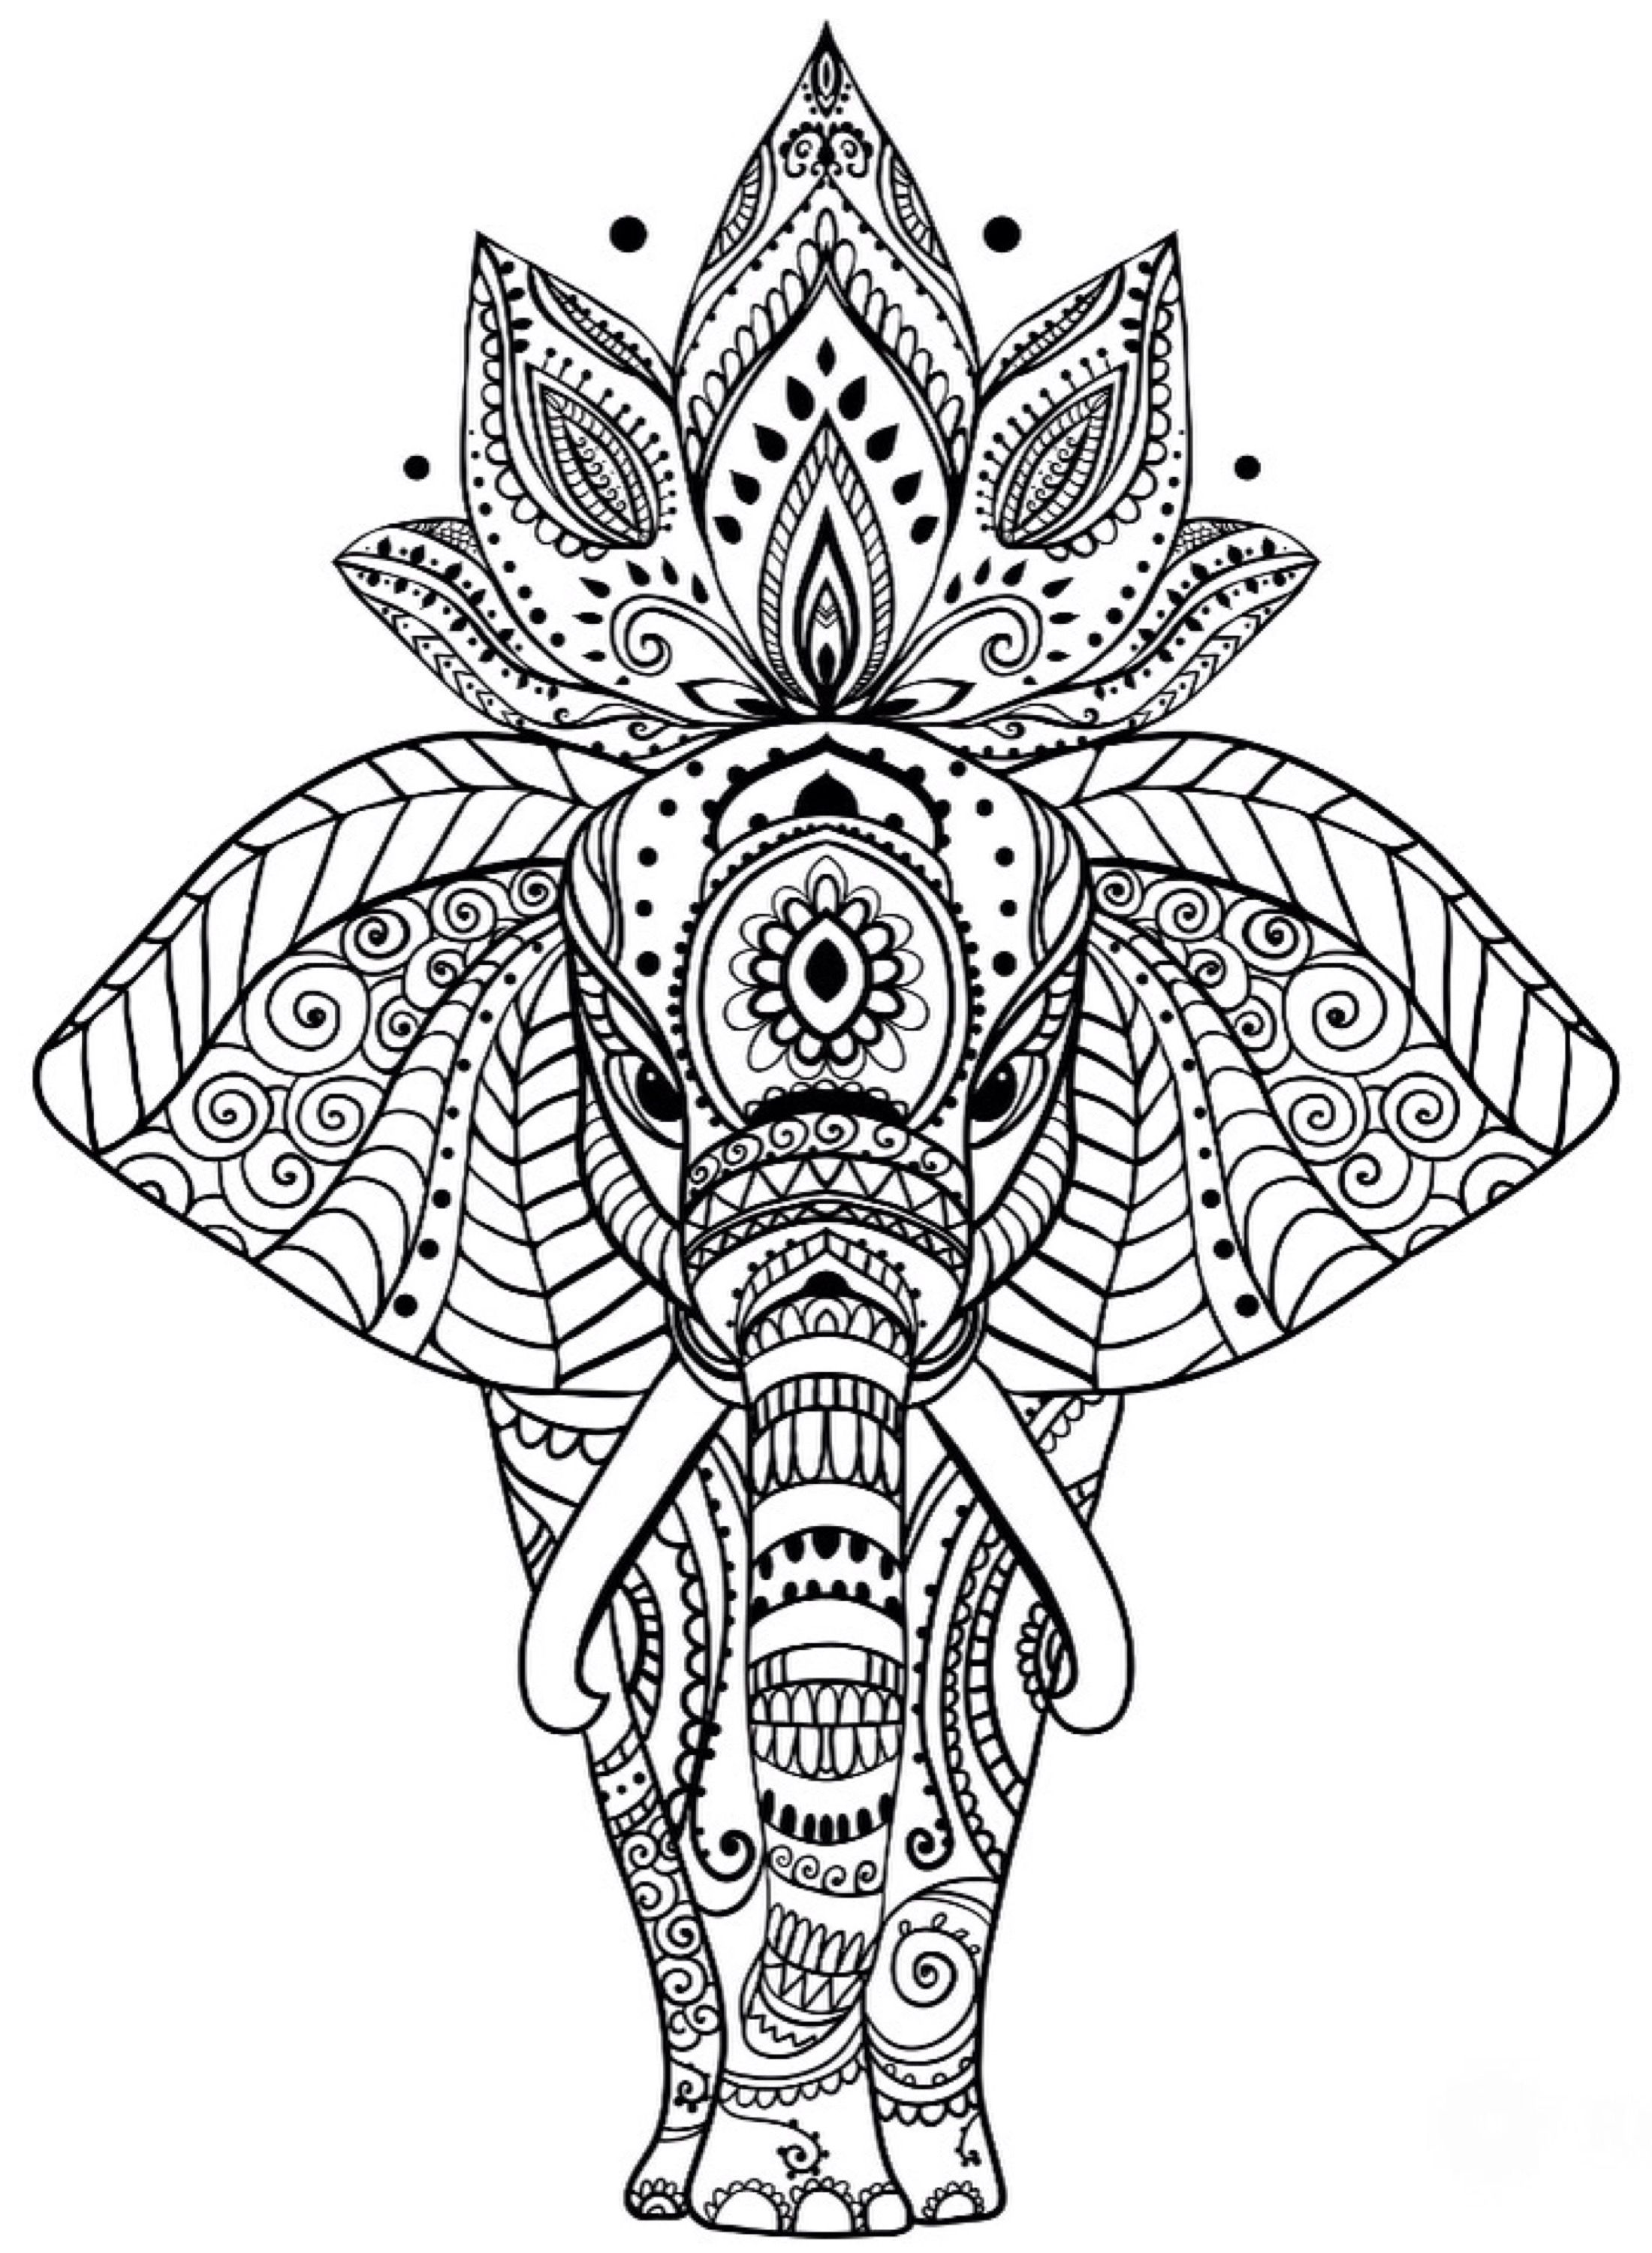 Elefante Zentangle Colorear Mandalas Hindues Imagenes De